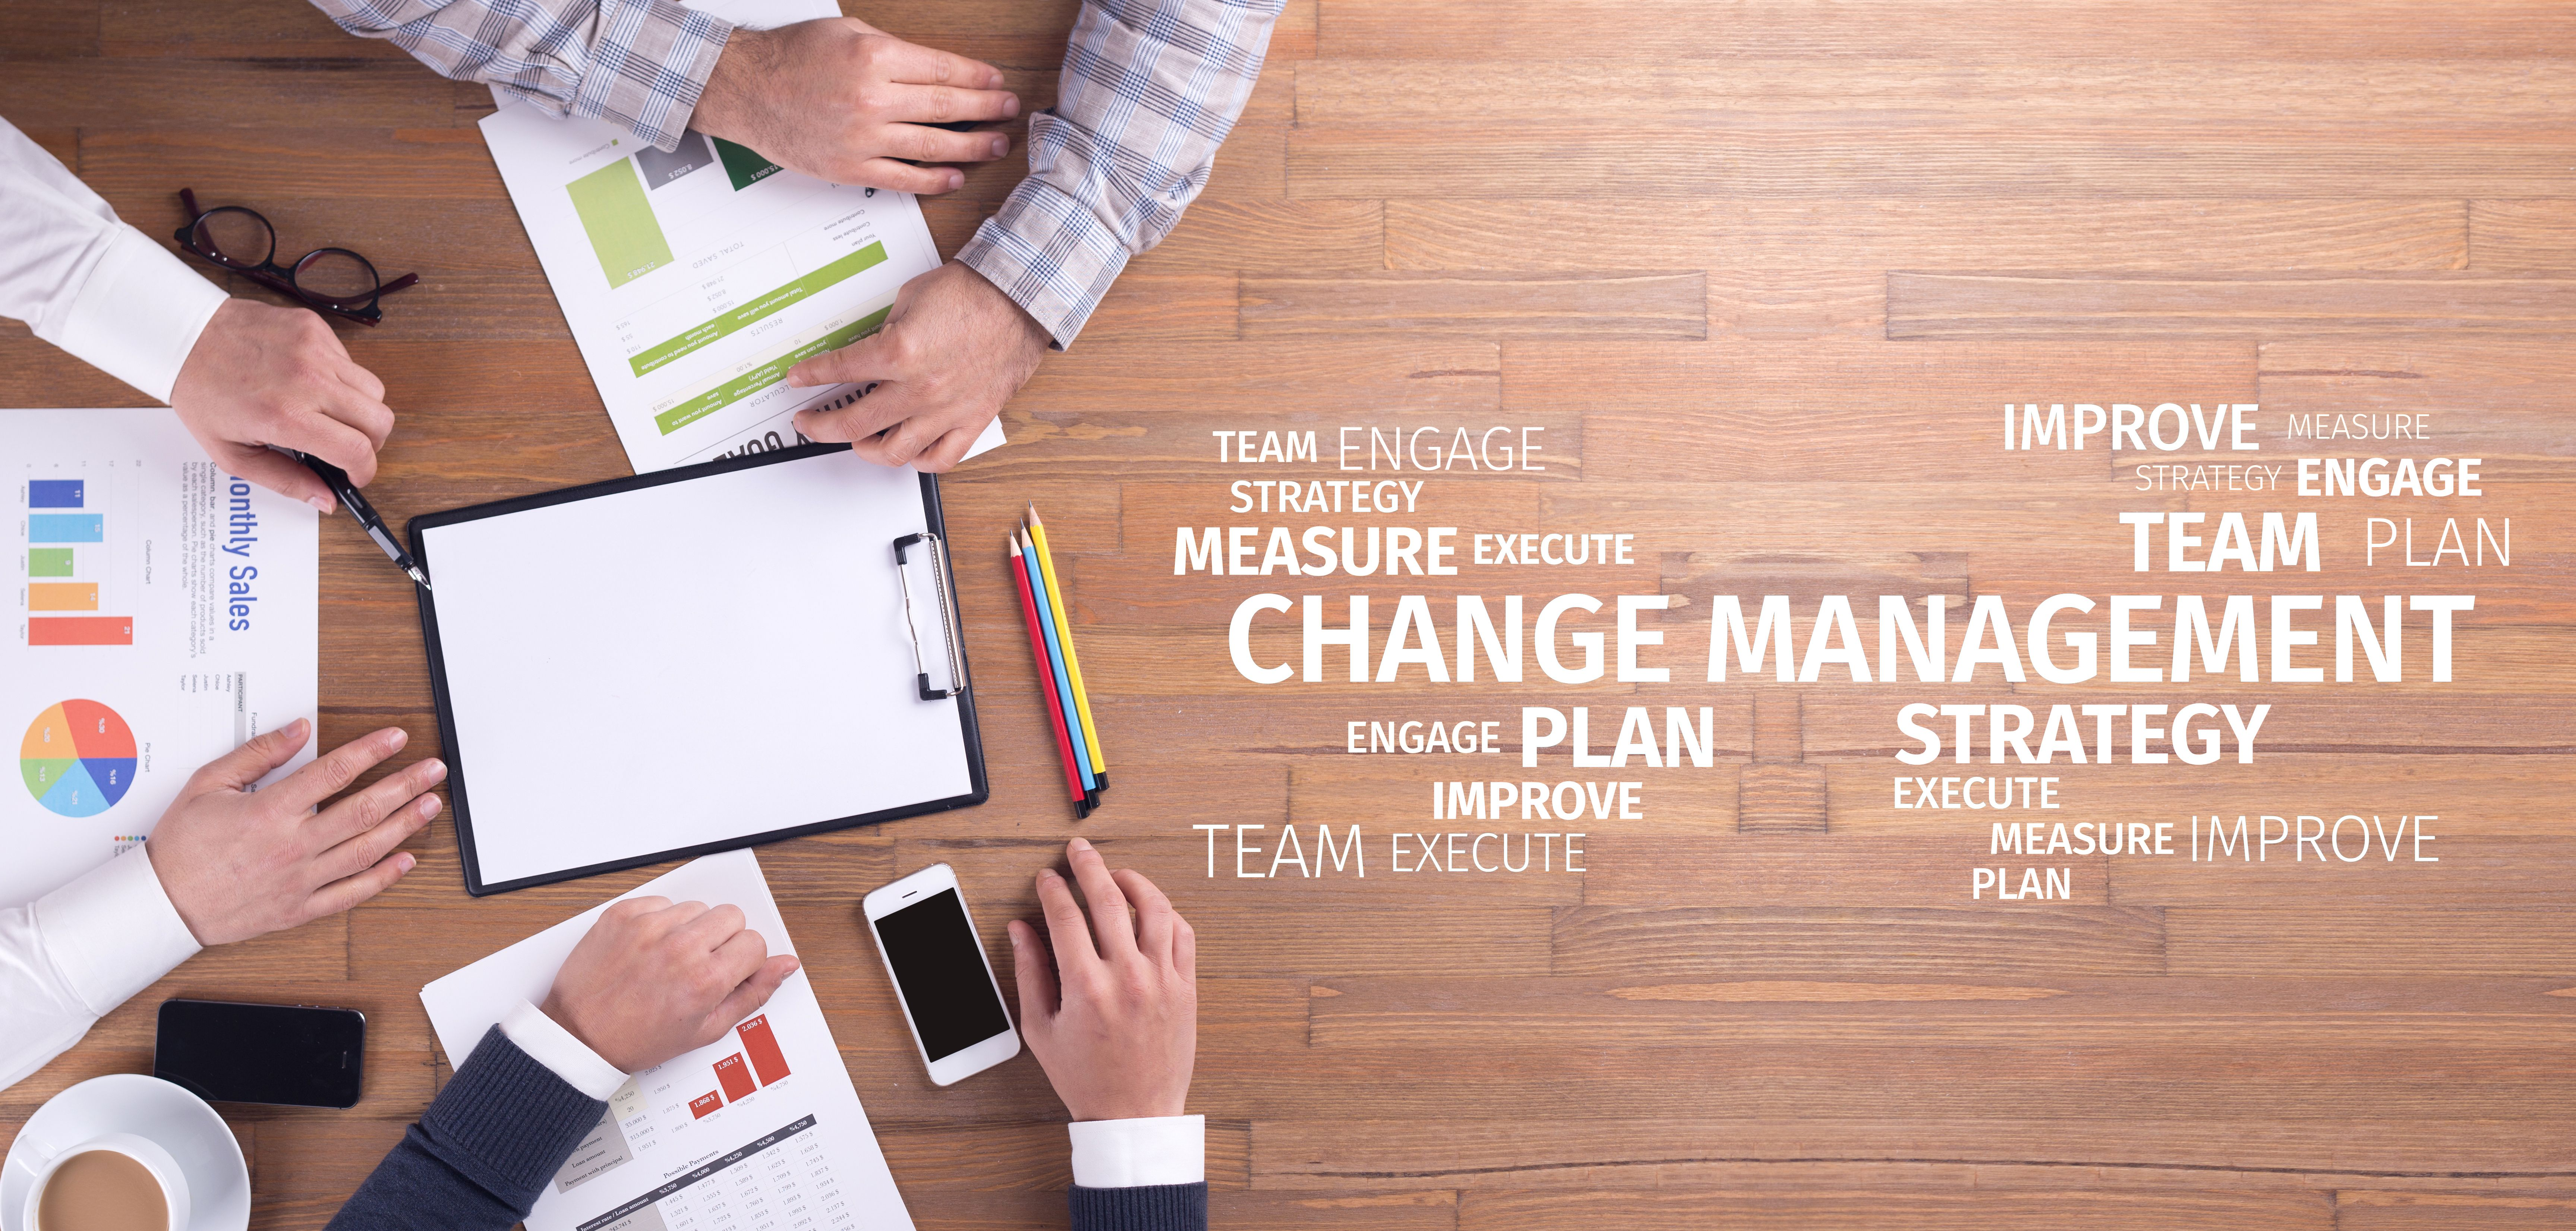 /how-leveraging-the-change-curve-supports-organizational-change-vg3233jt feature image